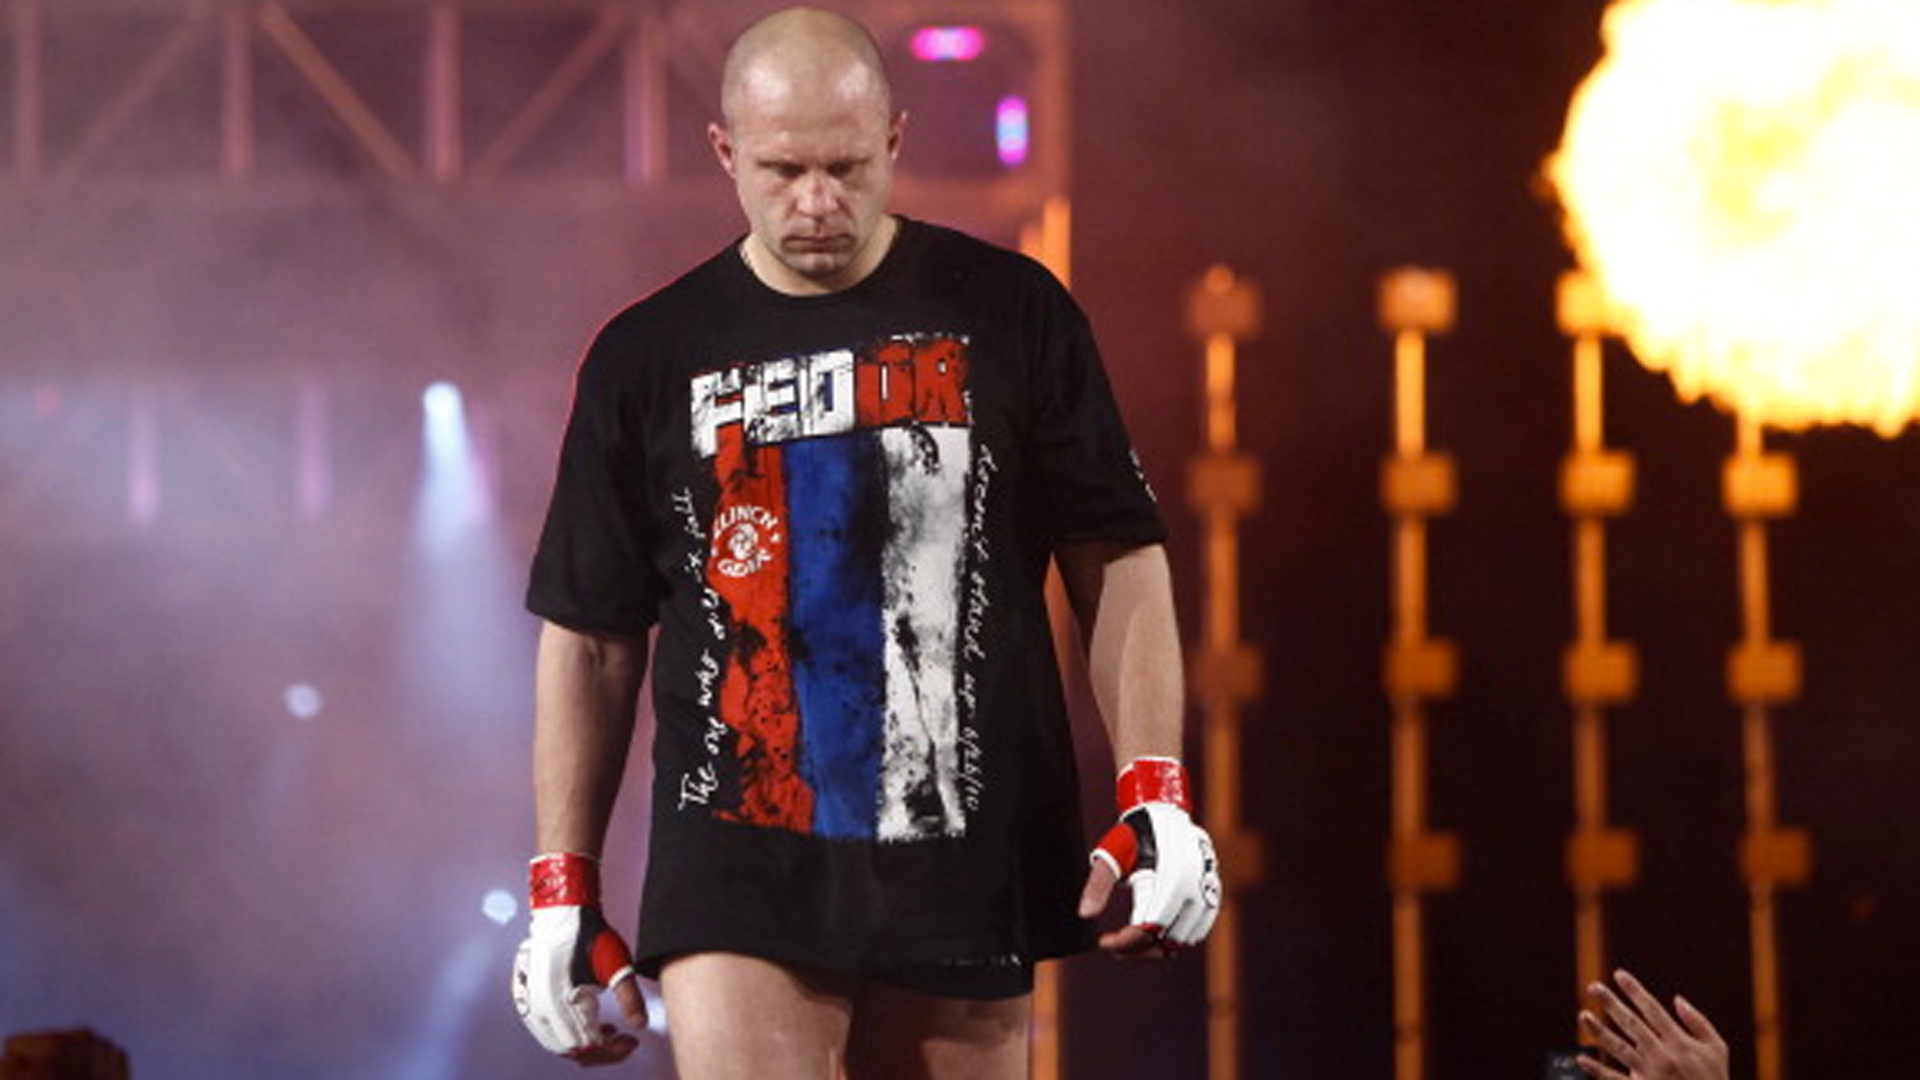 Watch Fedor Emelianenko KO Frank Mir at Bellator 198